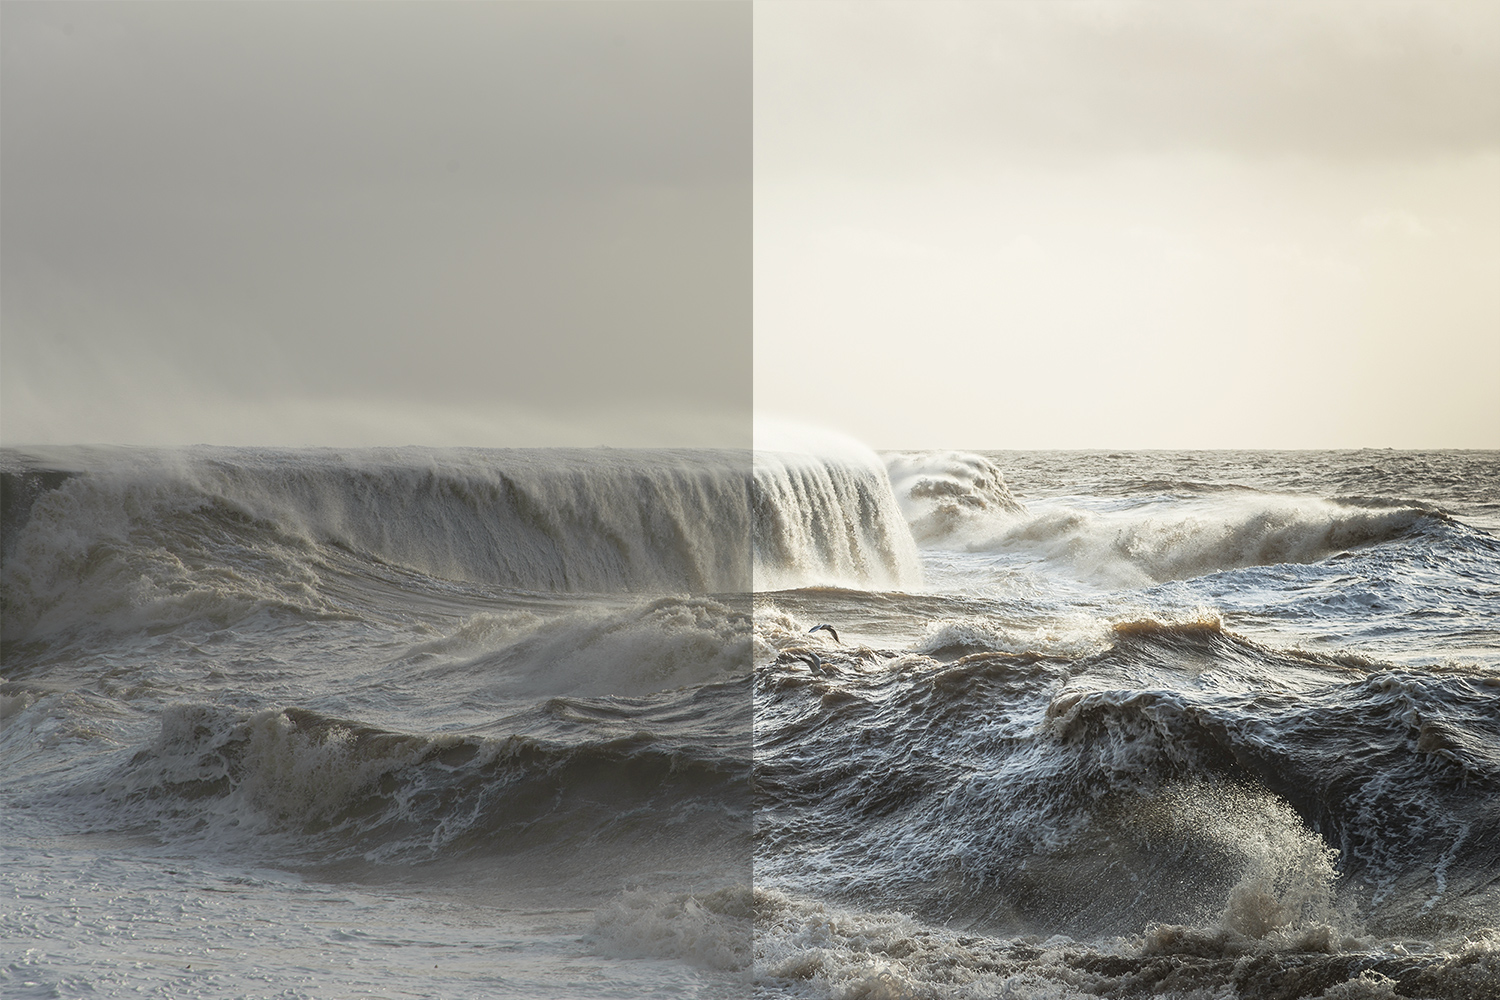 Abp Optimised Image Stormy Sea